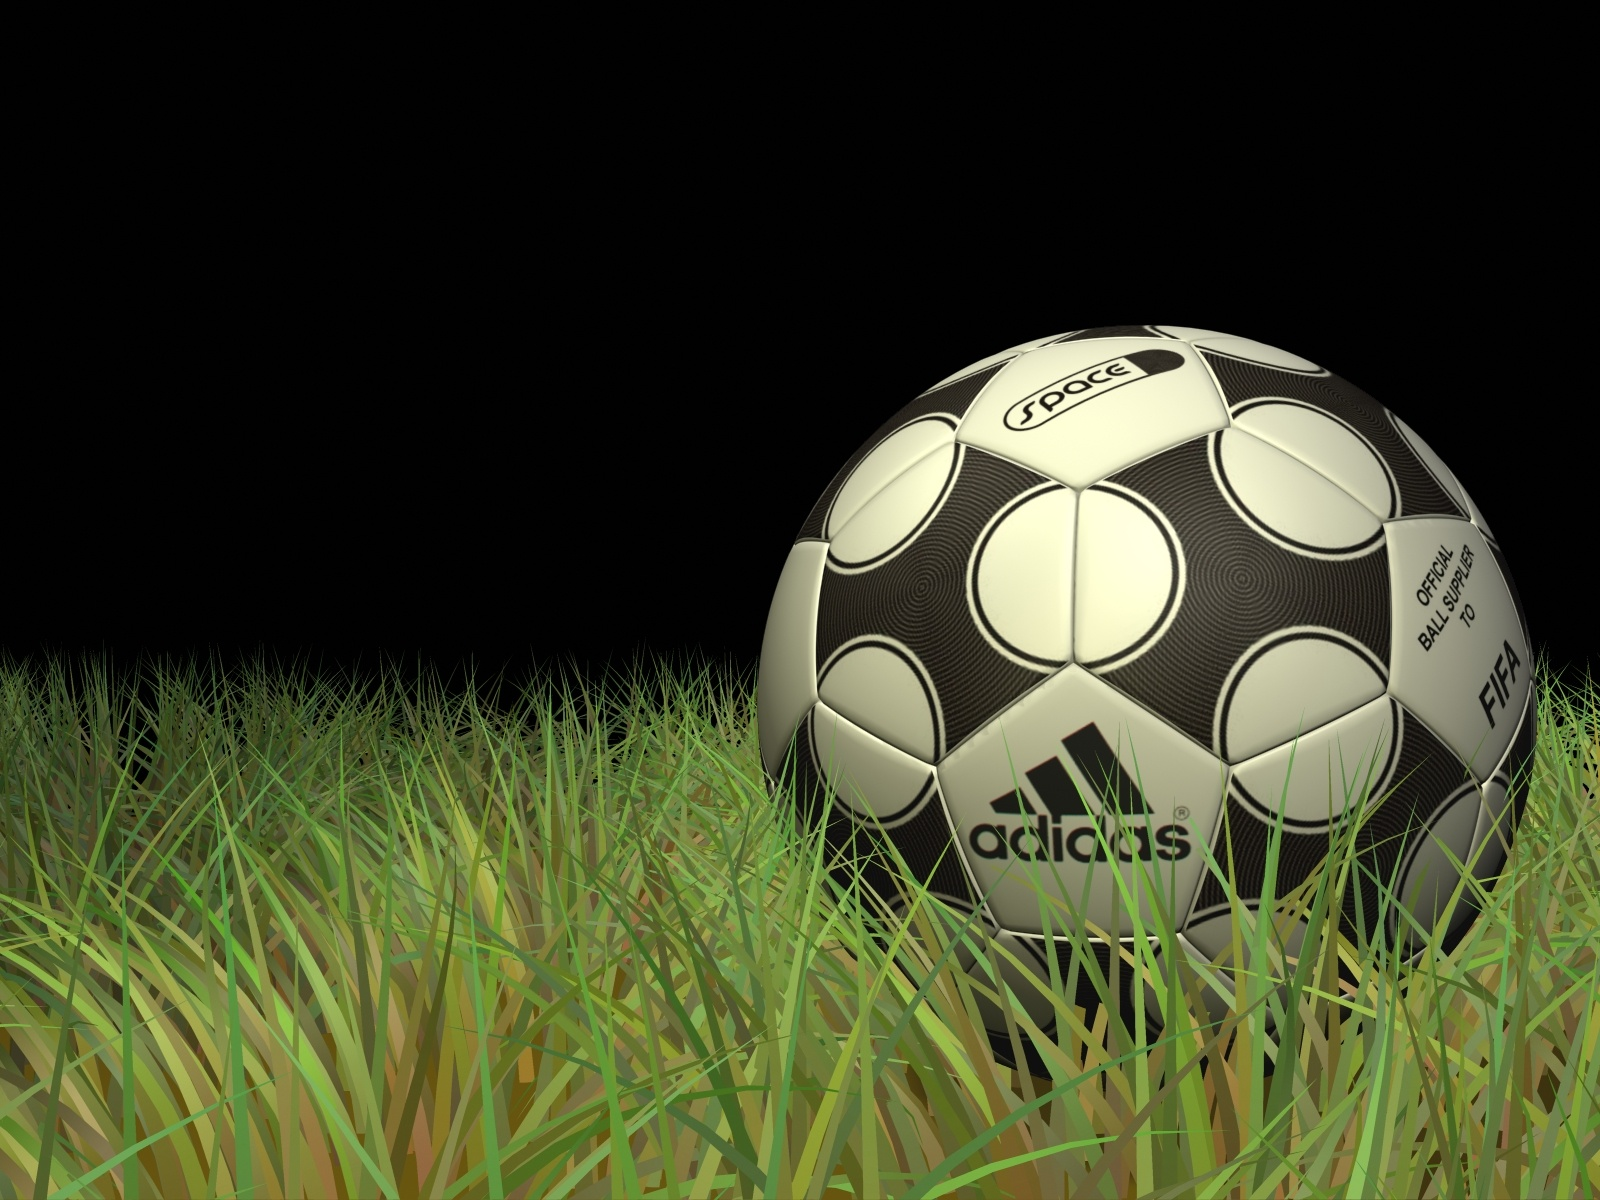 click to free download the wallpaper--Sports Activity Wallpaper, Adidas Football, Green Grass, Black Background 1600X1200 free wallpaper download